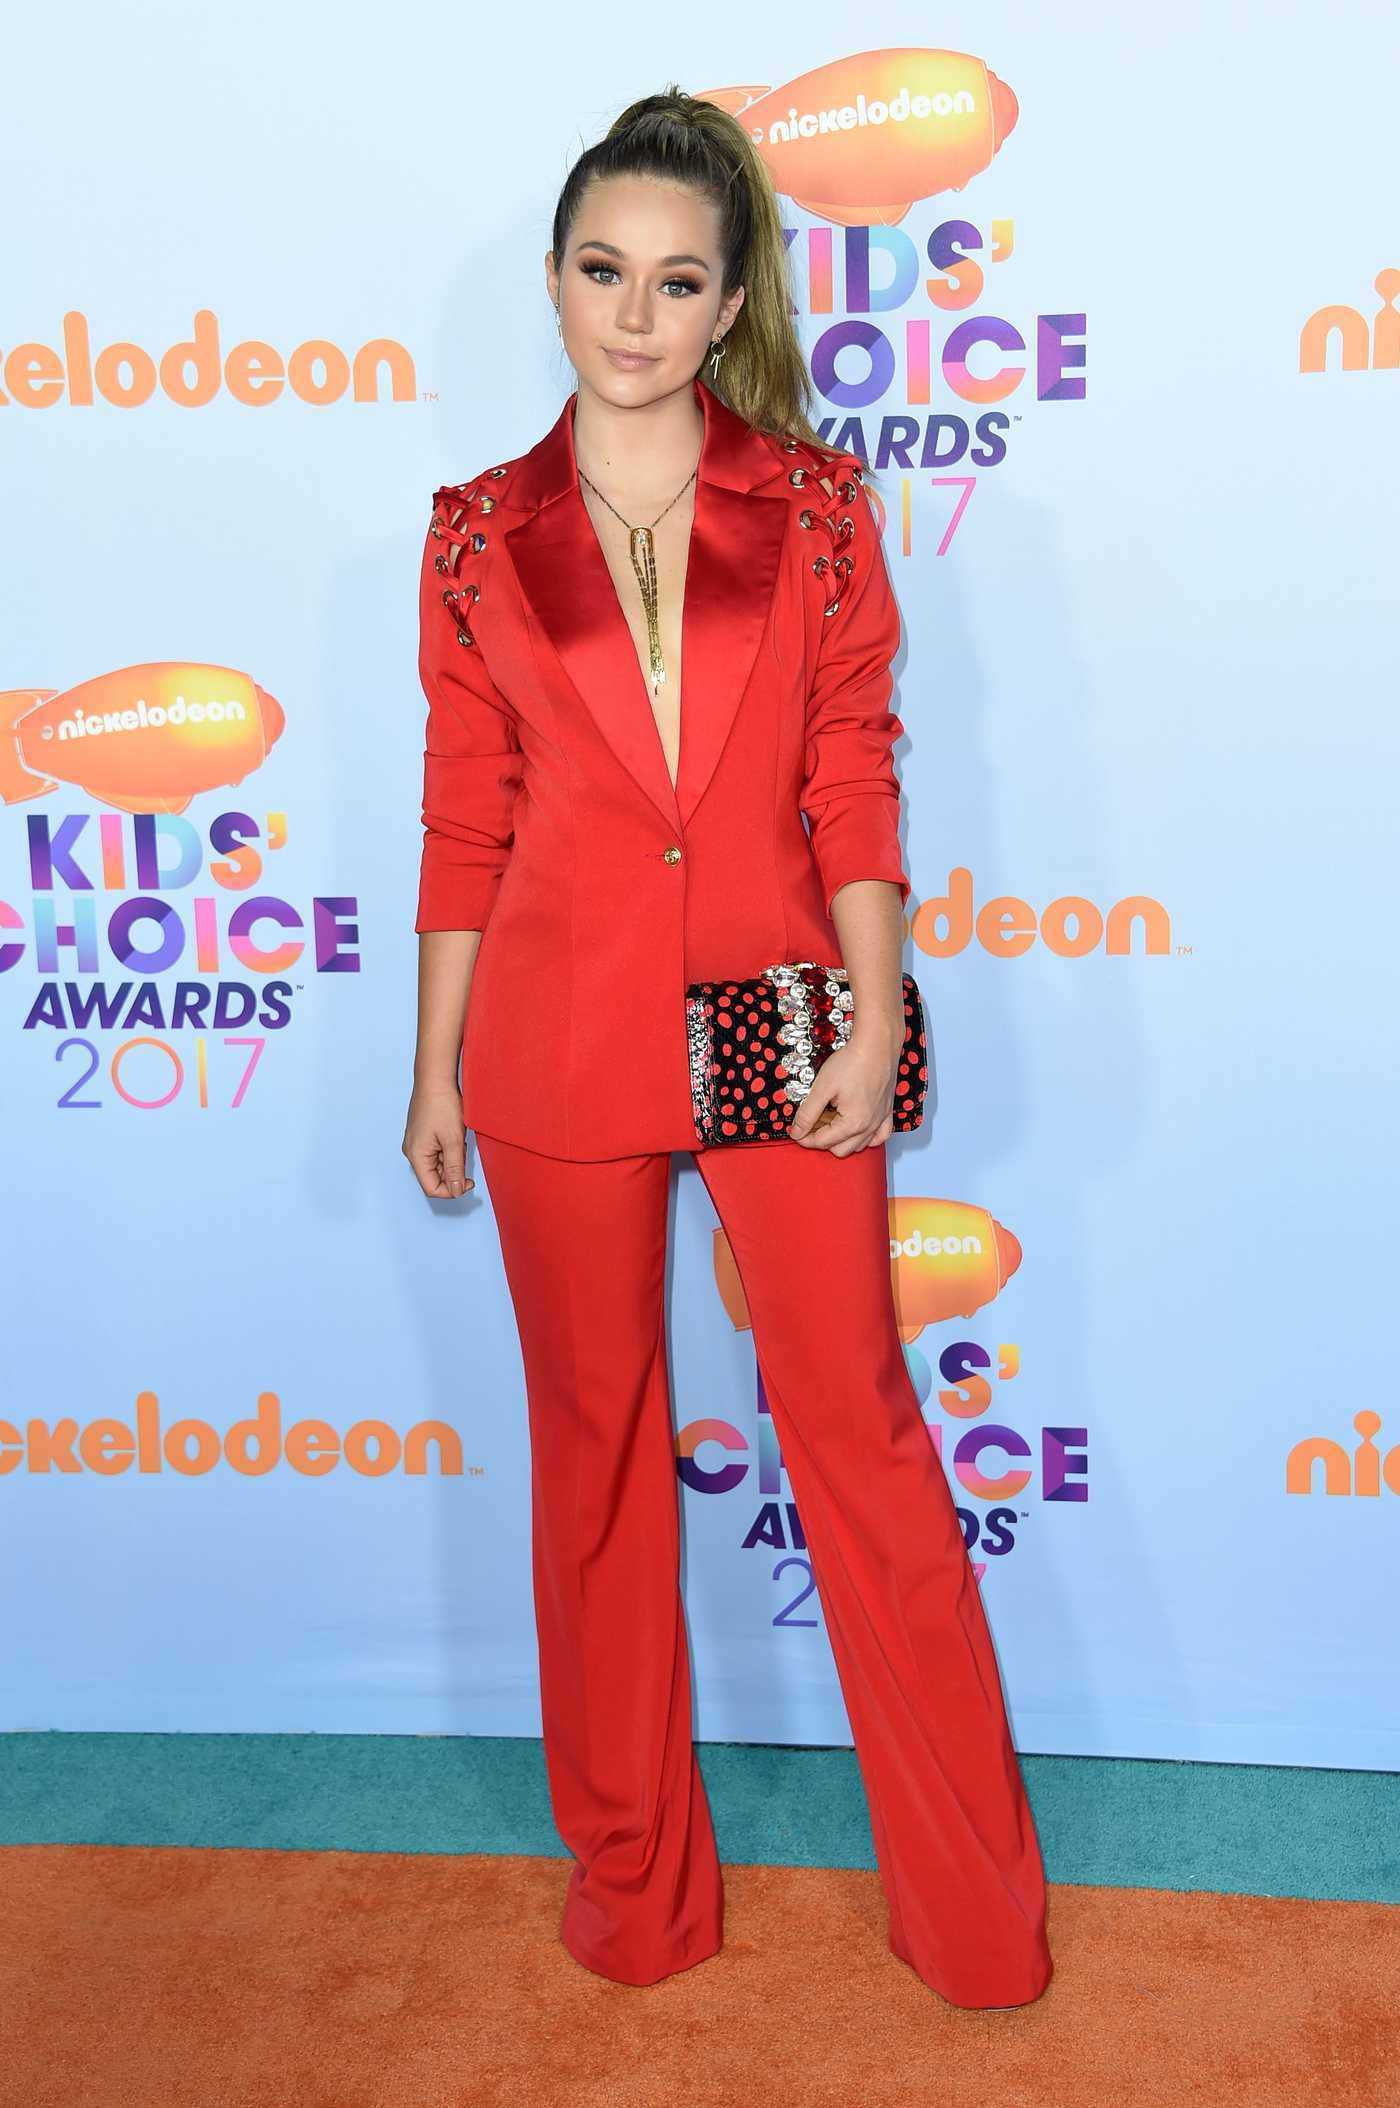 Brec Bassinger at the 2017 Nickelodeon Kids' Choice Awards in Los Angeles 03/11/2017